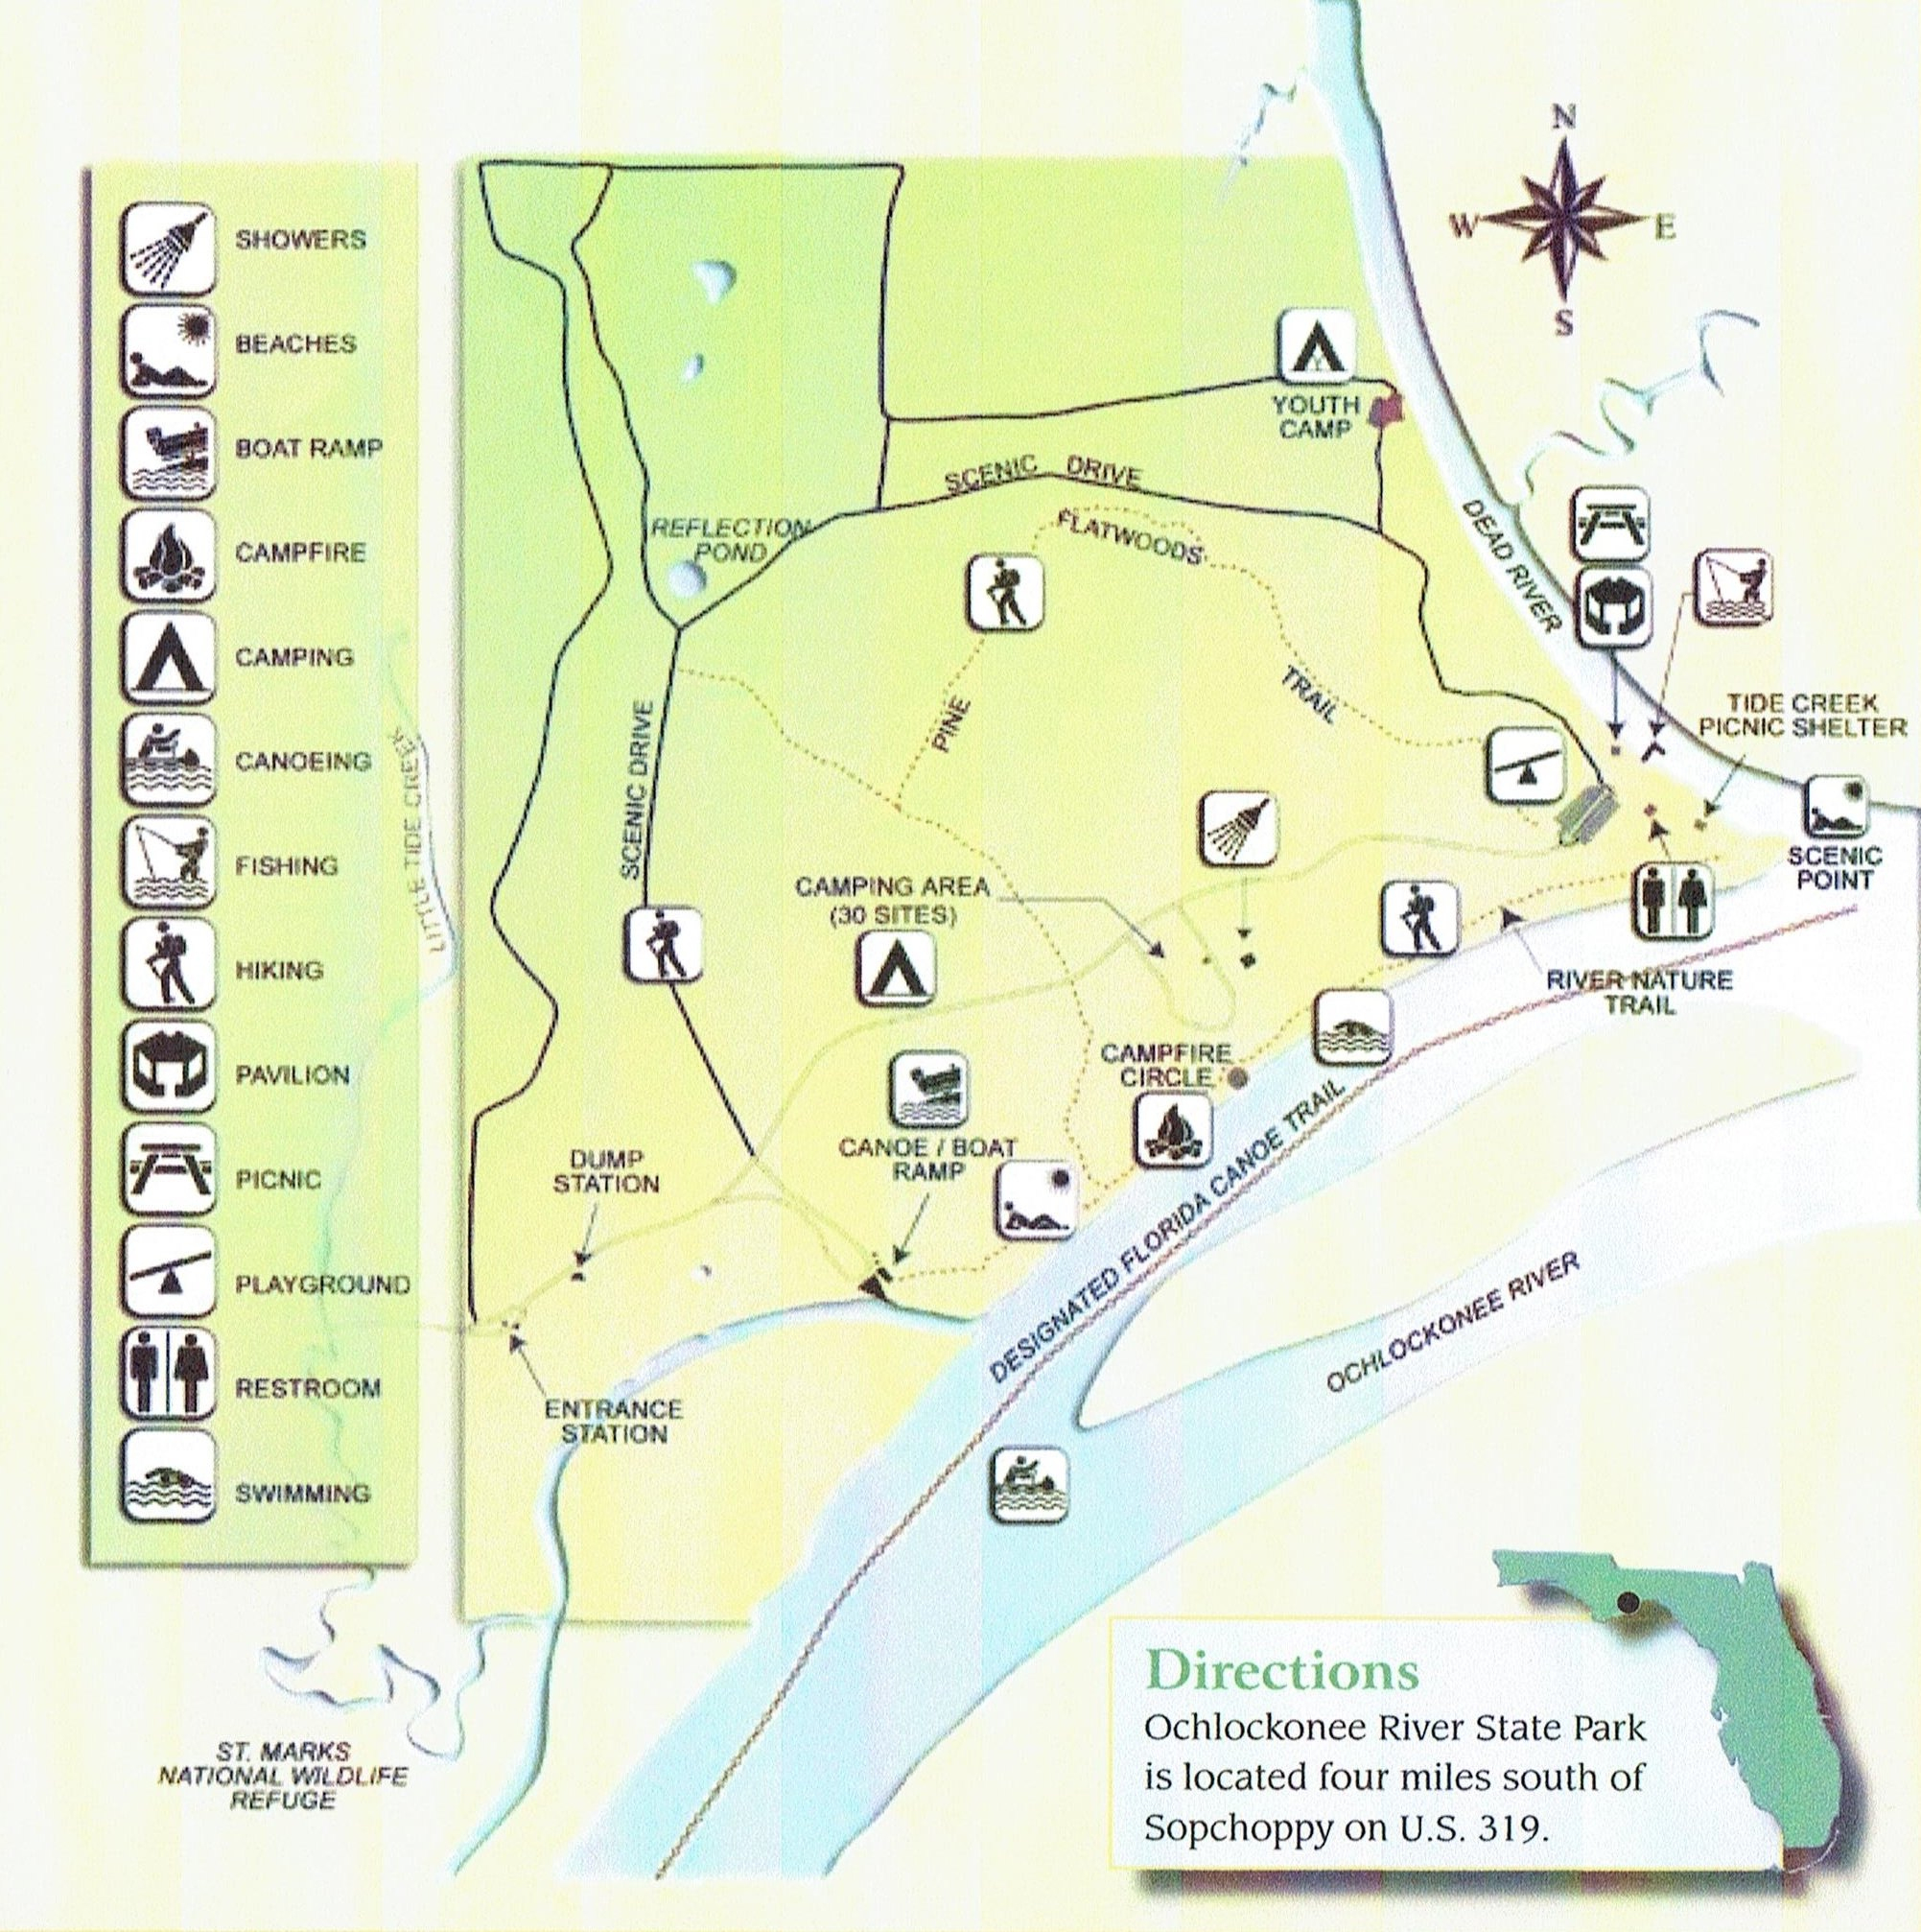 Ochlockonee River State Park - Camping - Places To Stay - Carrabelle - Florida State Parks Camping Map